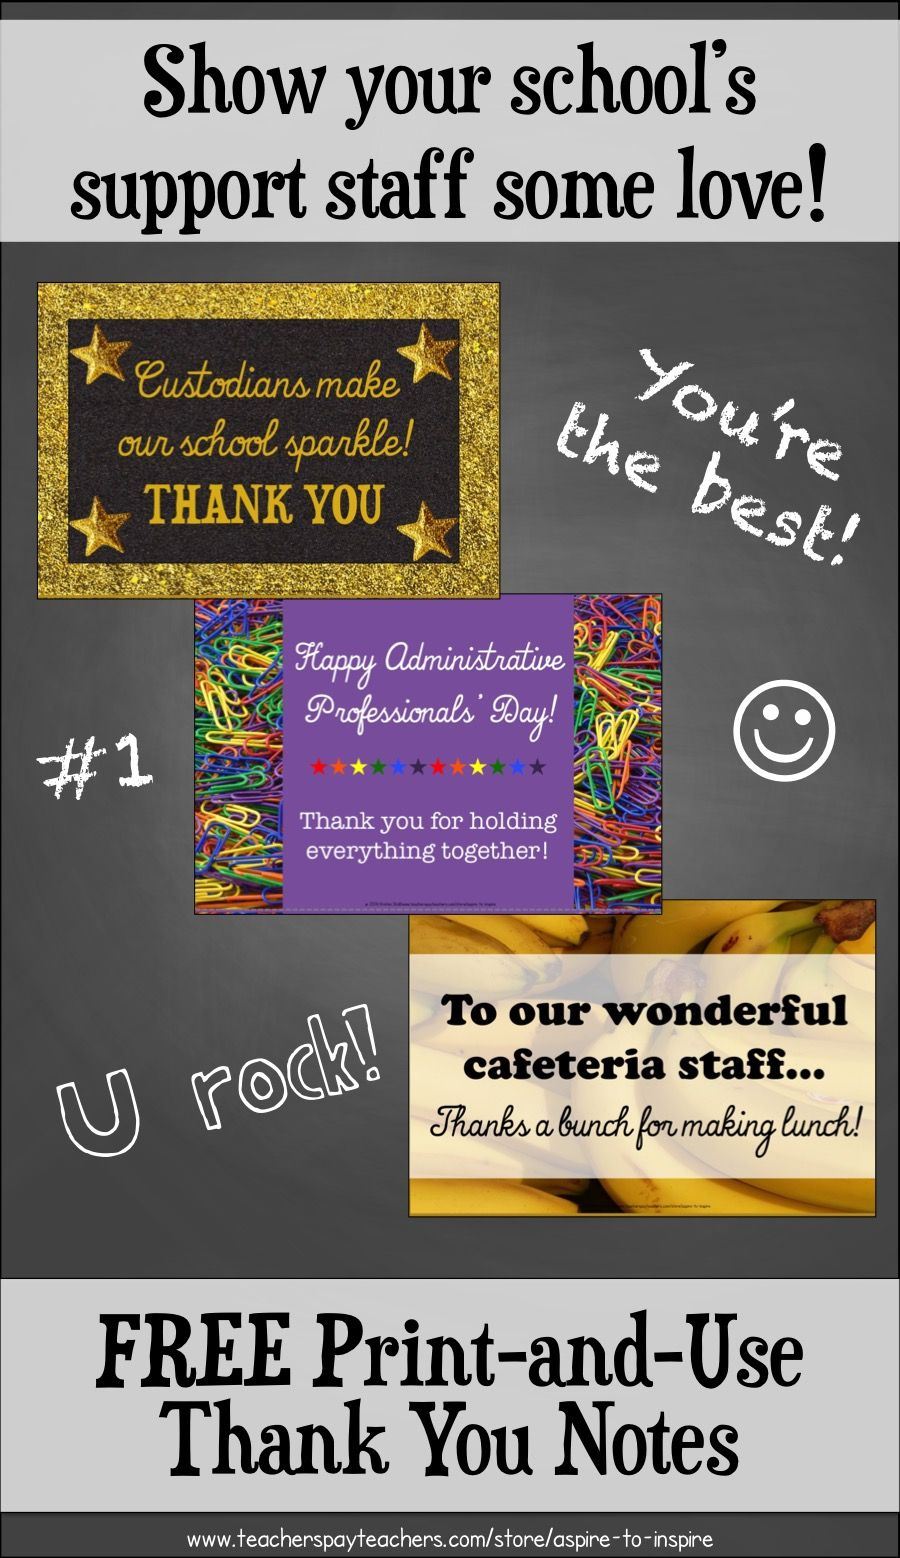 Did You Know Administrative Professionals Day Is April  Have Your Students Show Some Love To Your Schools Support Staff With These Free Print And Use